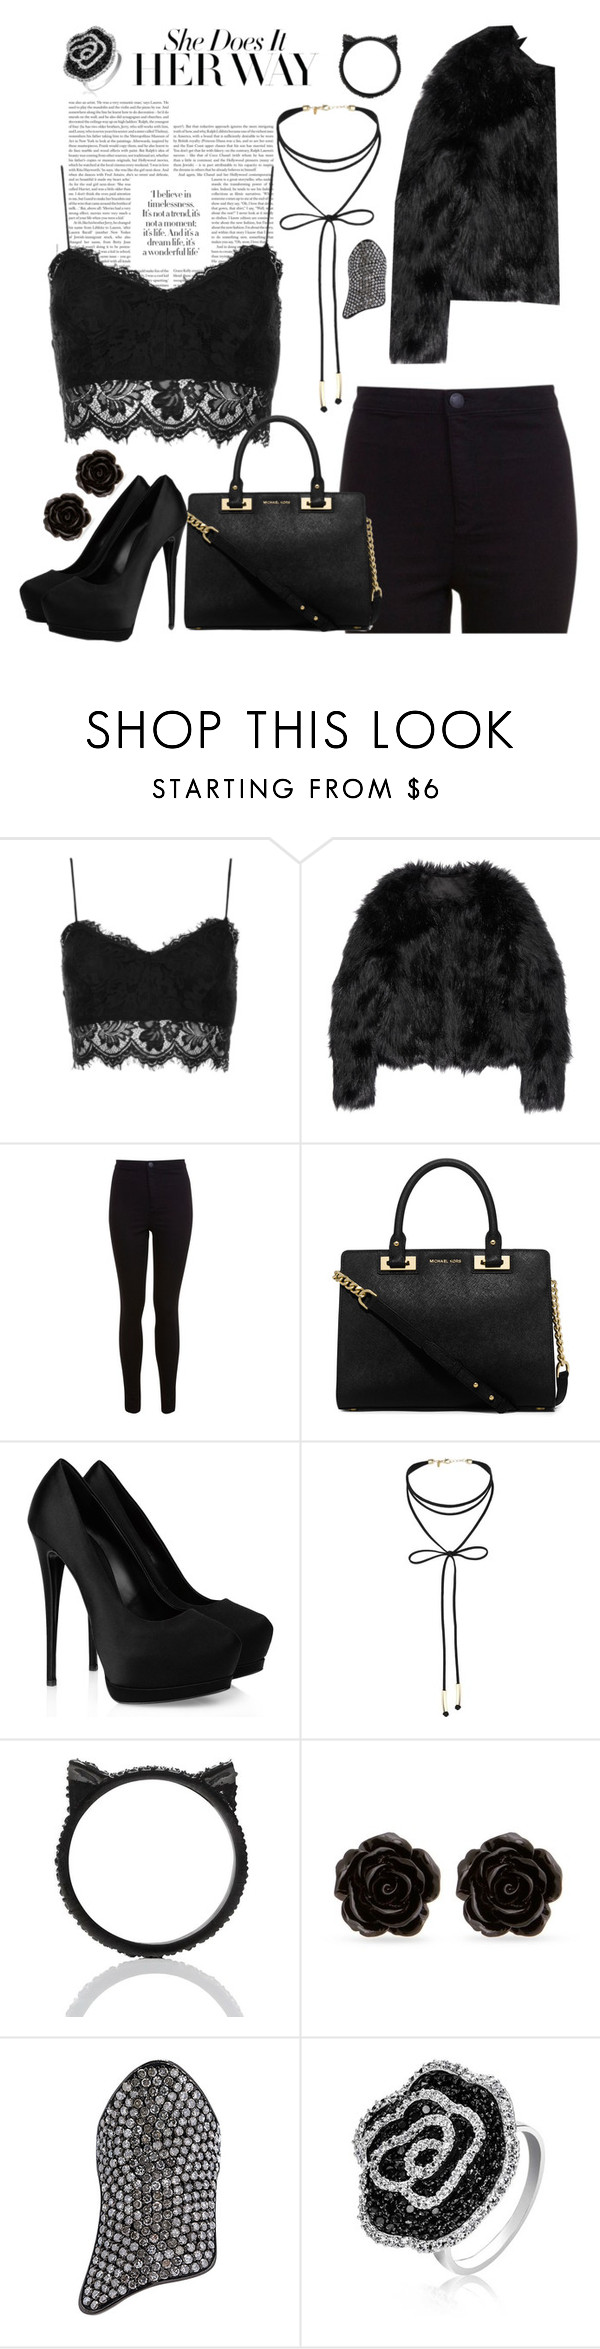 """""""Black is my happy color"""" by sorryiiovemgc ❤ liked on Polyvore featuring Topshop, Altuzarra, Miss Selfridge, MICHAEL Michael Kors, Giuseppe Zanotti, Kate Spade, Erica Lyons, Lynn Ban and Bling Jewelry"""